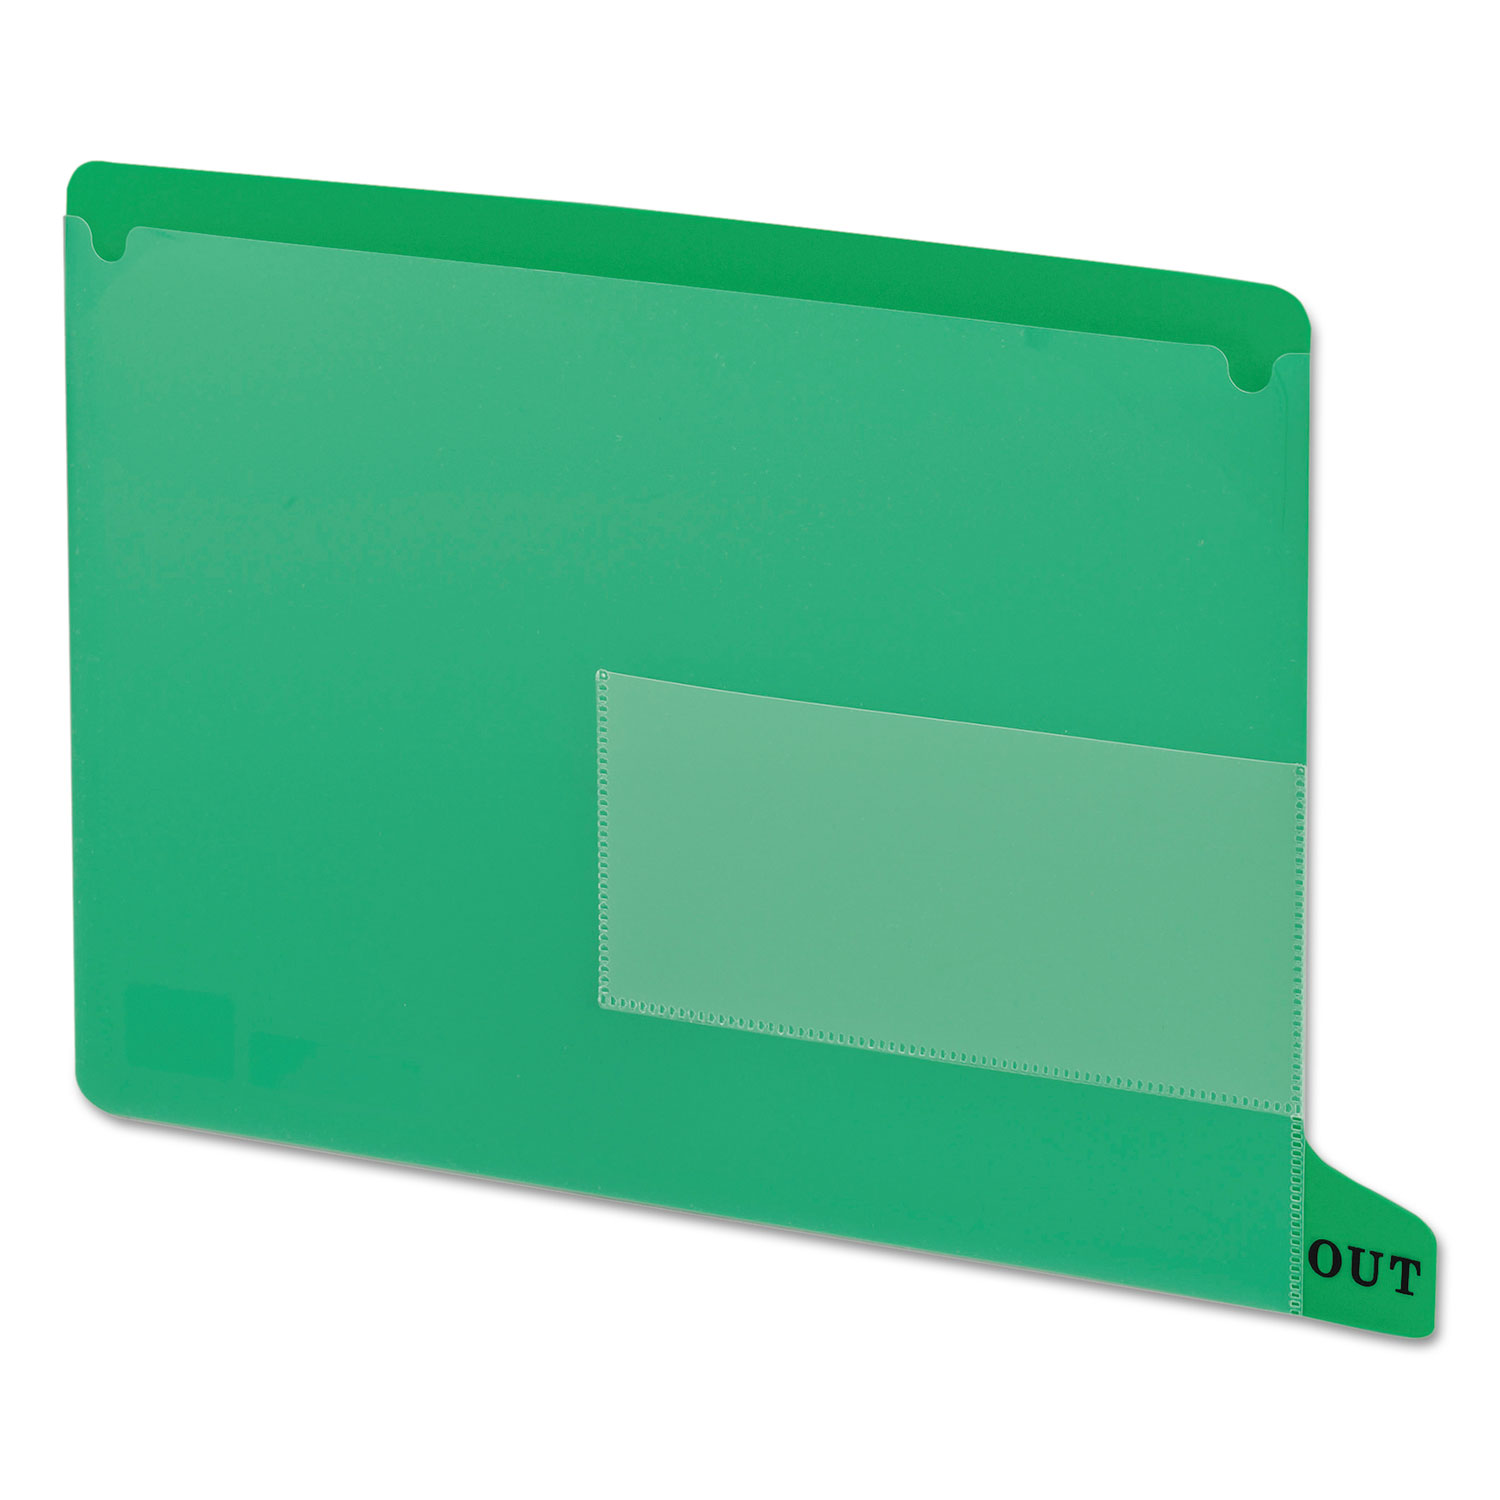 Colored Poly Out Guides with Pockets, 1/3-Cut End Tab, Out, 8.5 x 11, Green, 25/Box